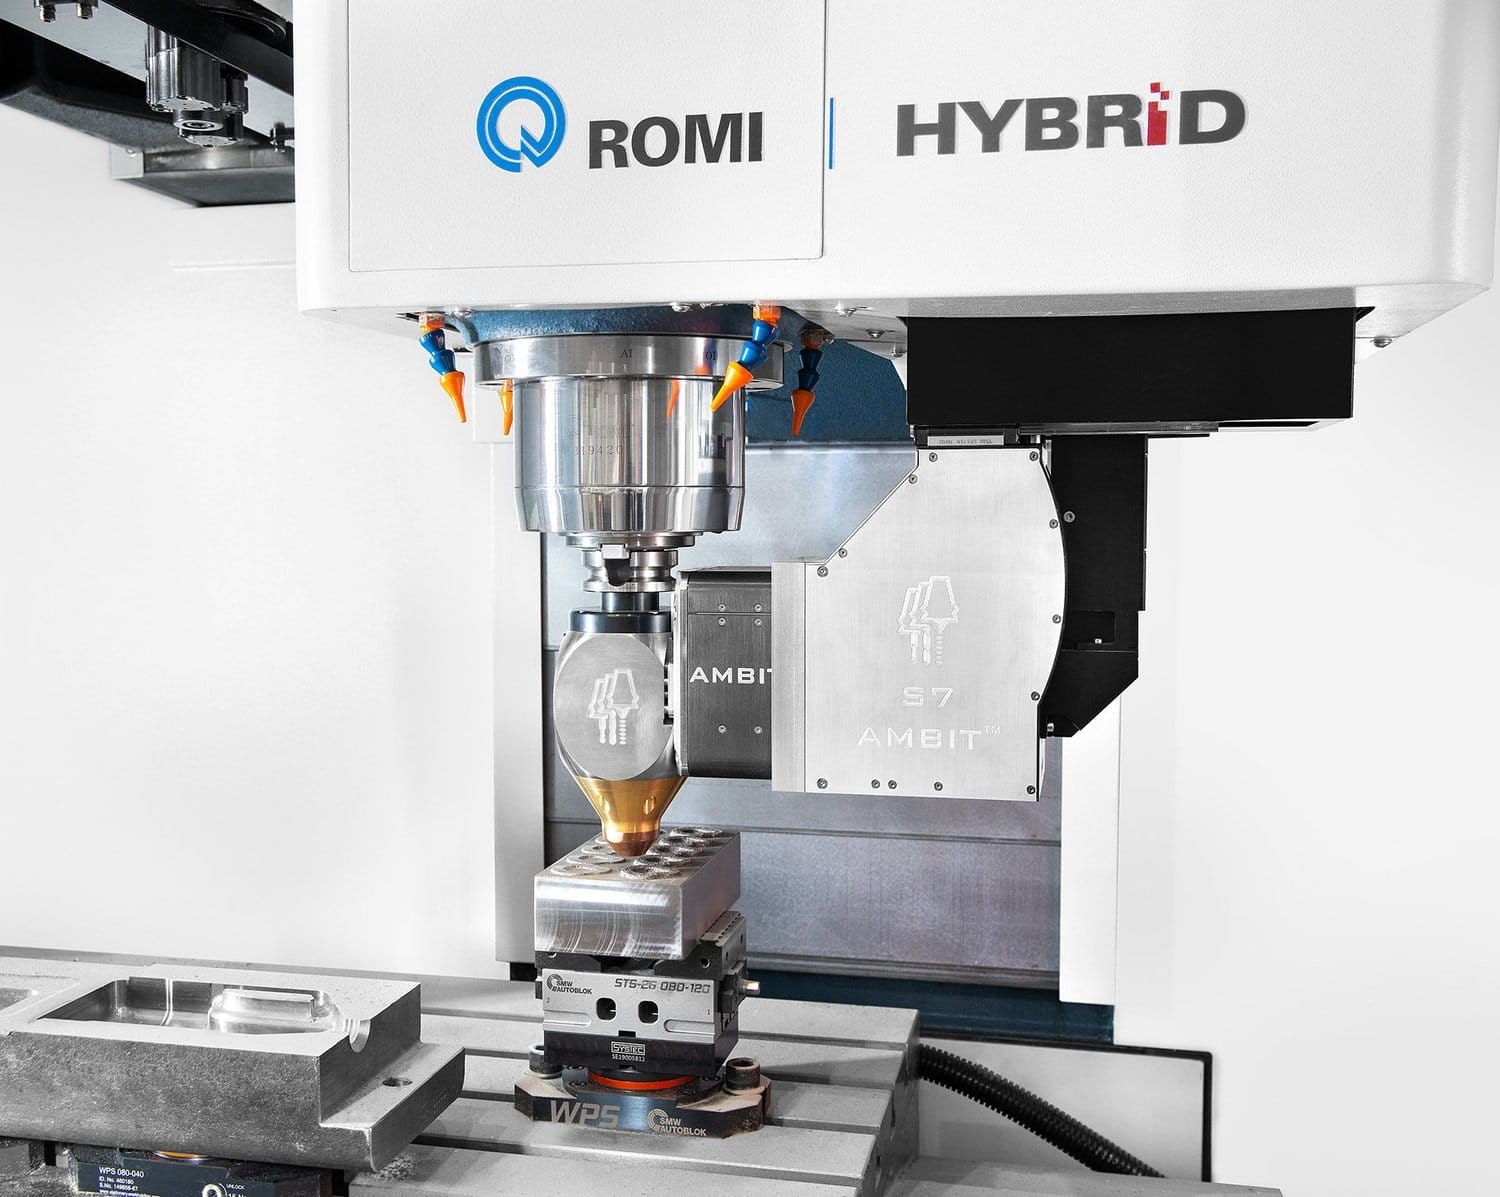 The hybrid manufacturing interchangeable heads.